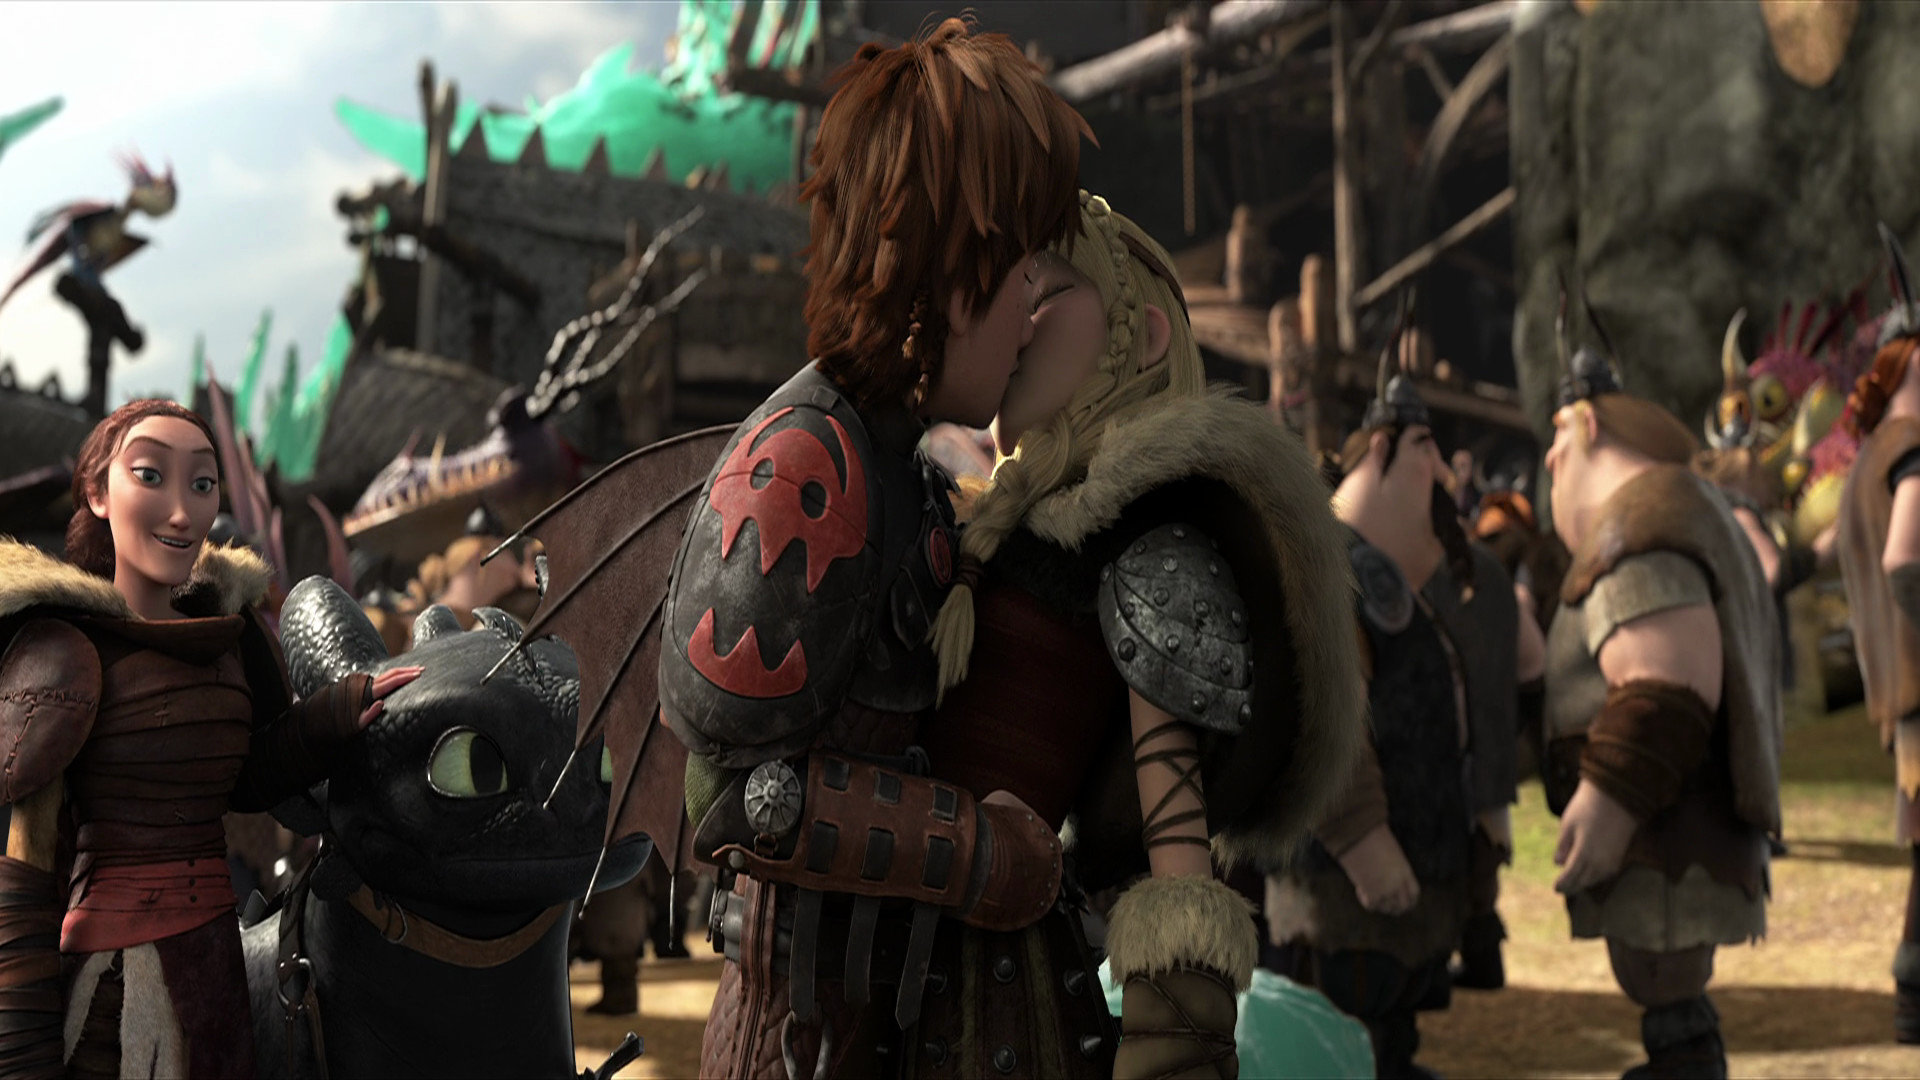 High Resolution How To Train Your Dragon 2 Full Hd Wallpaper ID90194 For Desktop